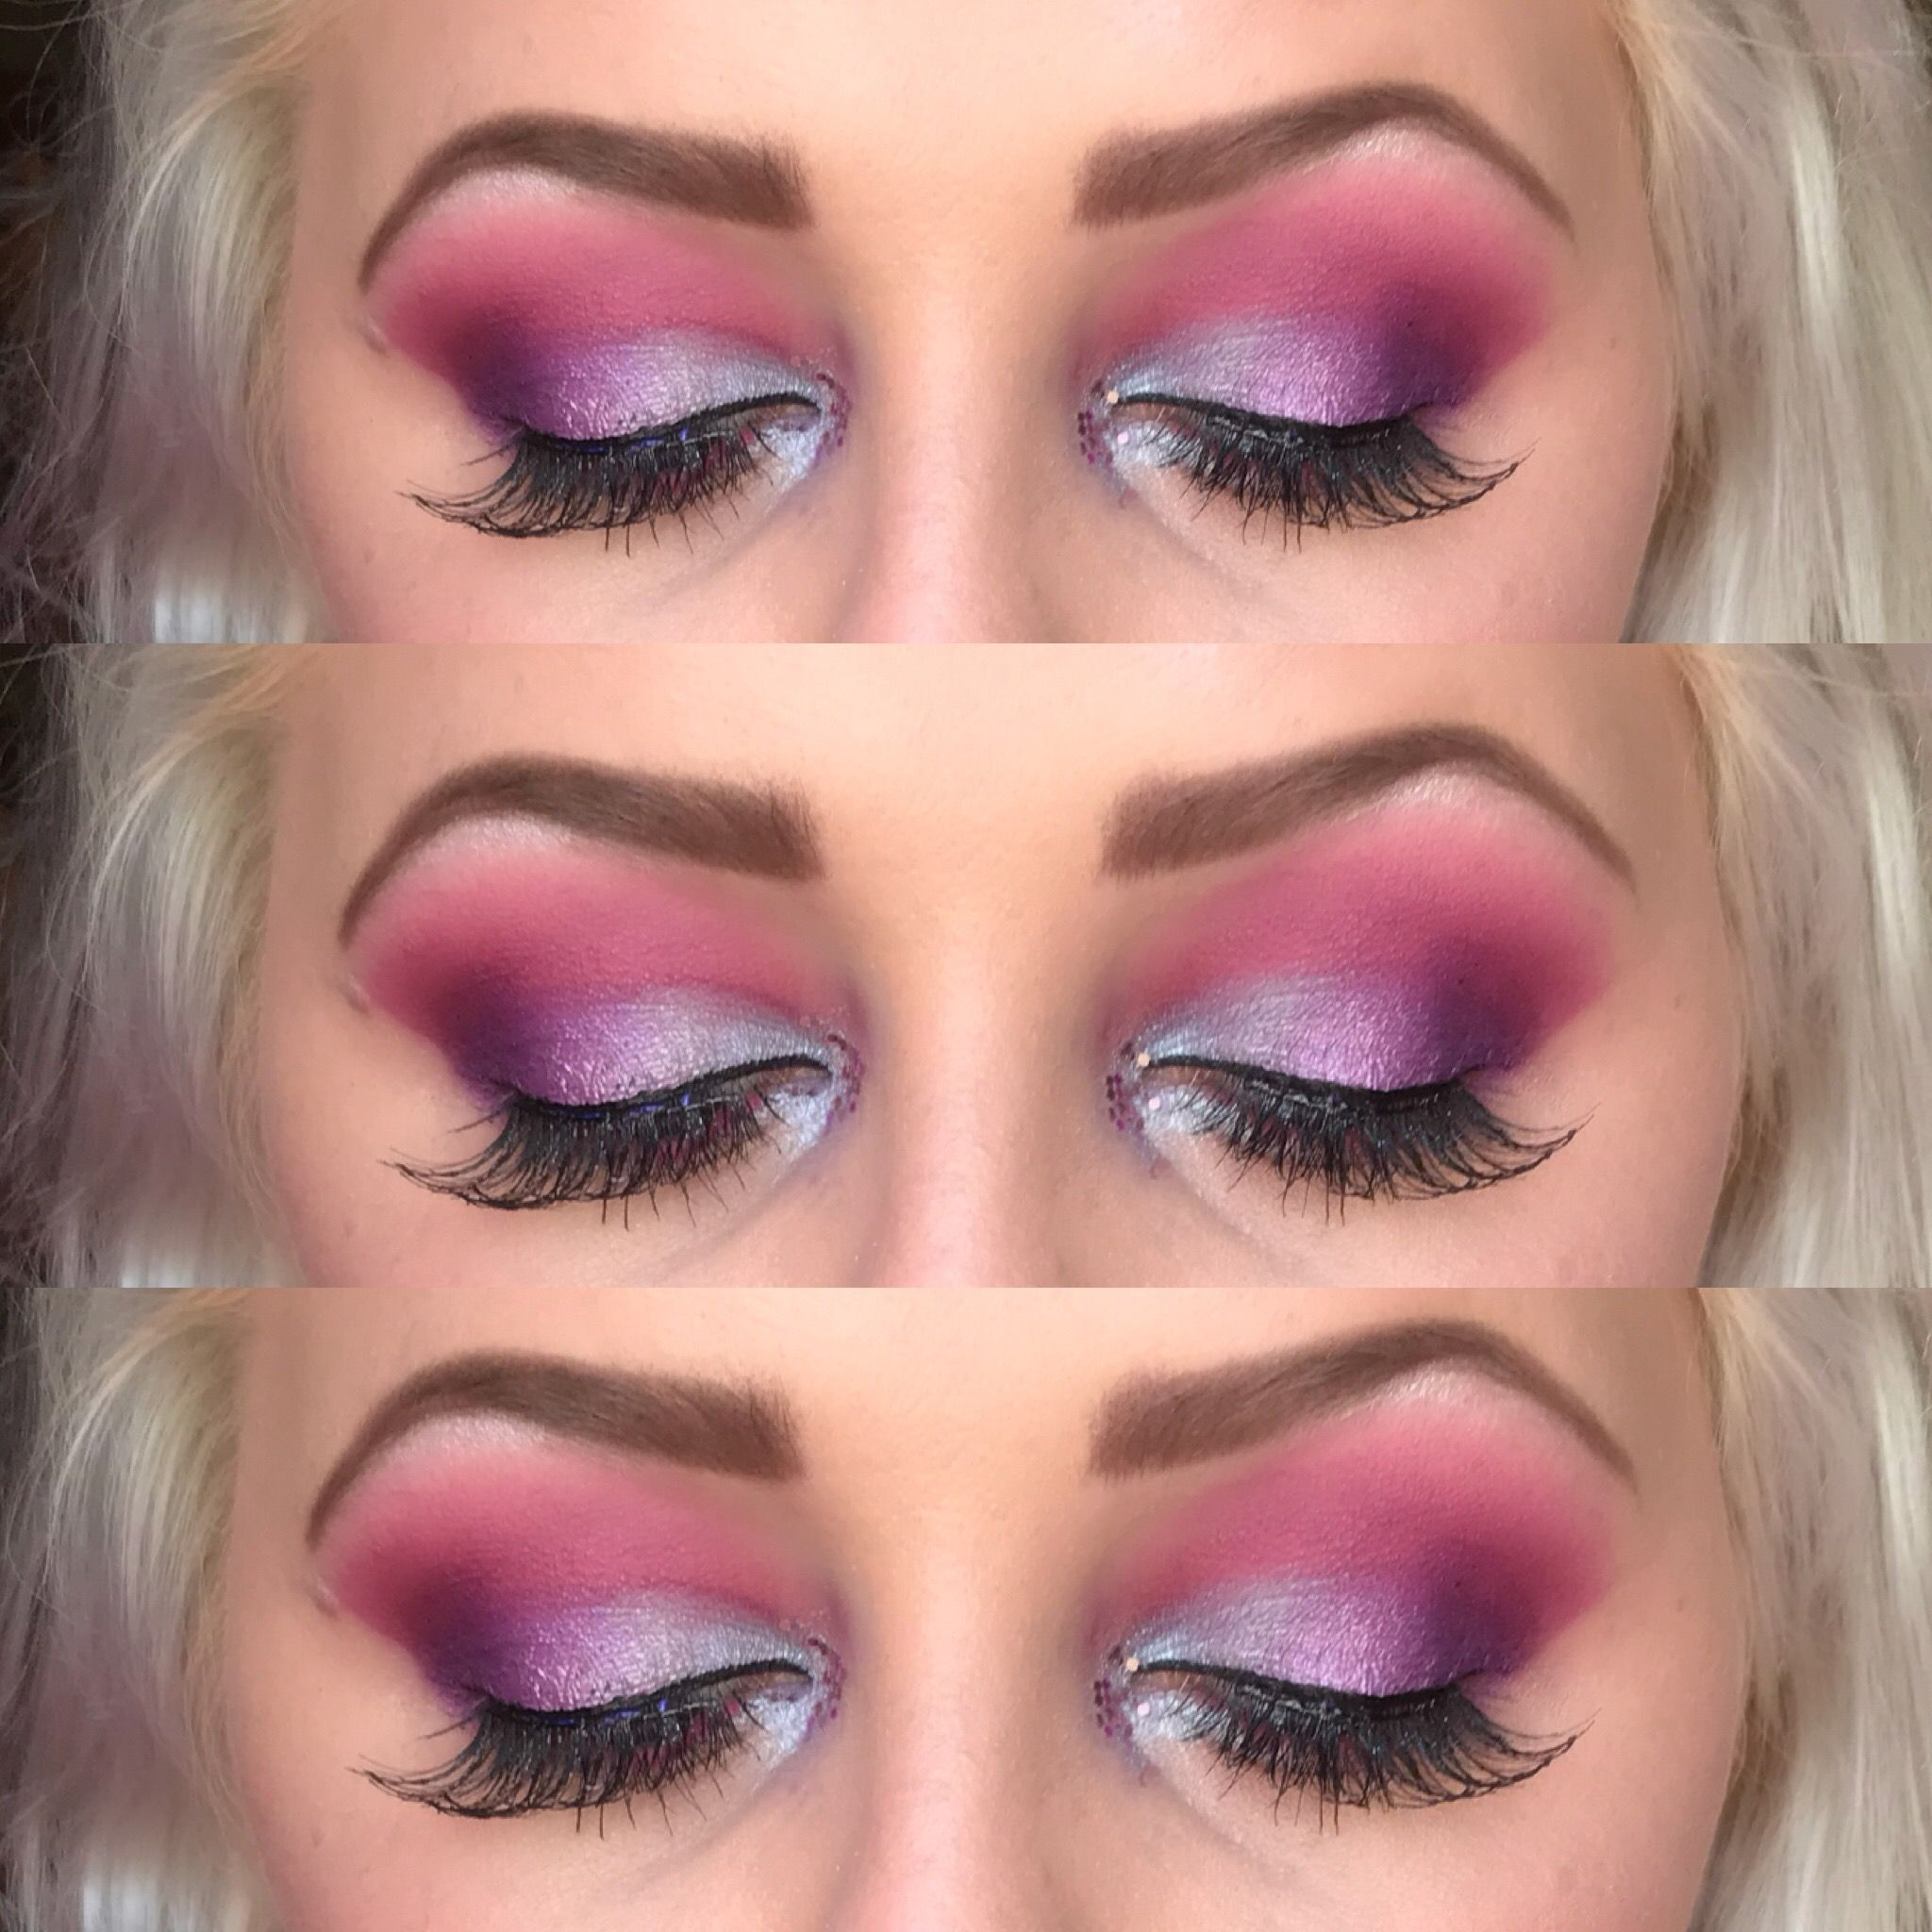 Cotton Candy Eye Makeup Eye Makeup Eye Makeup Makeup Makeup Looks